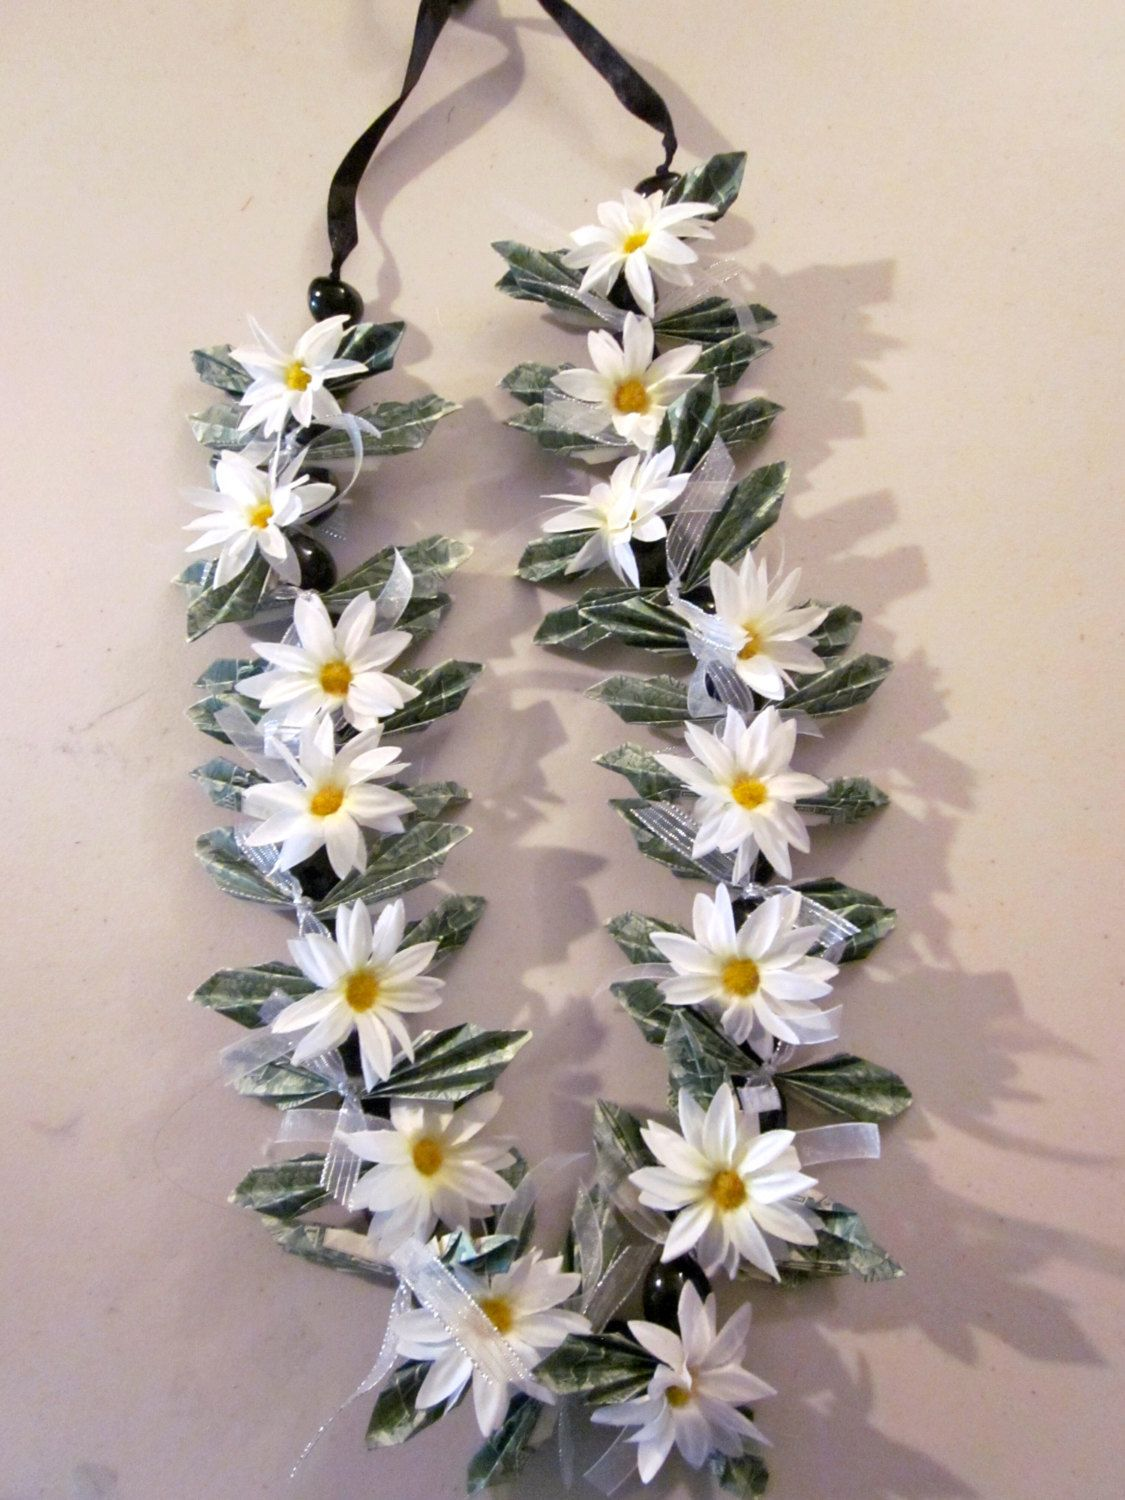 Graduation Leis  White Flowers Wedding Or Graduation Lei By Pcbymarilyn On  Etsy